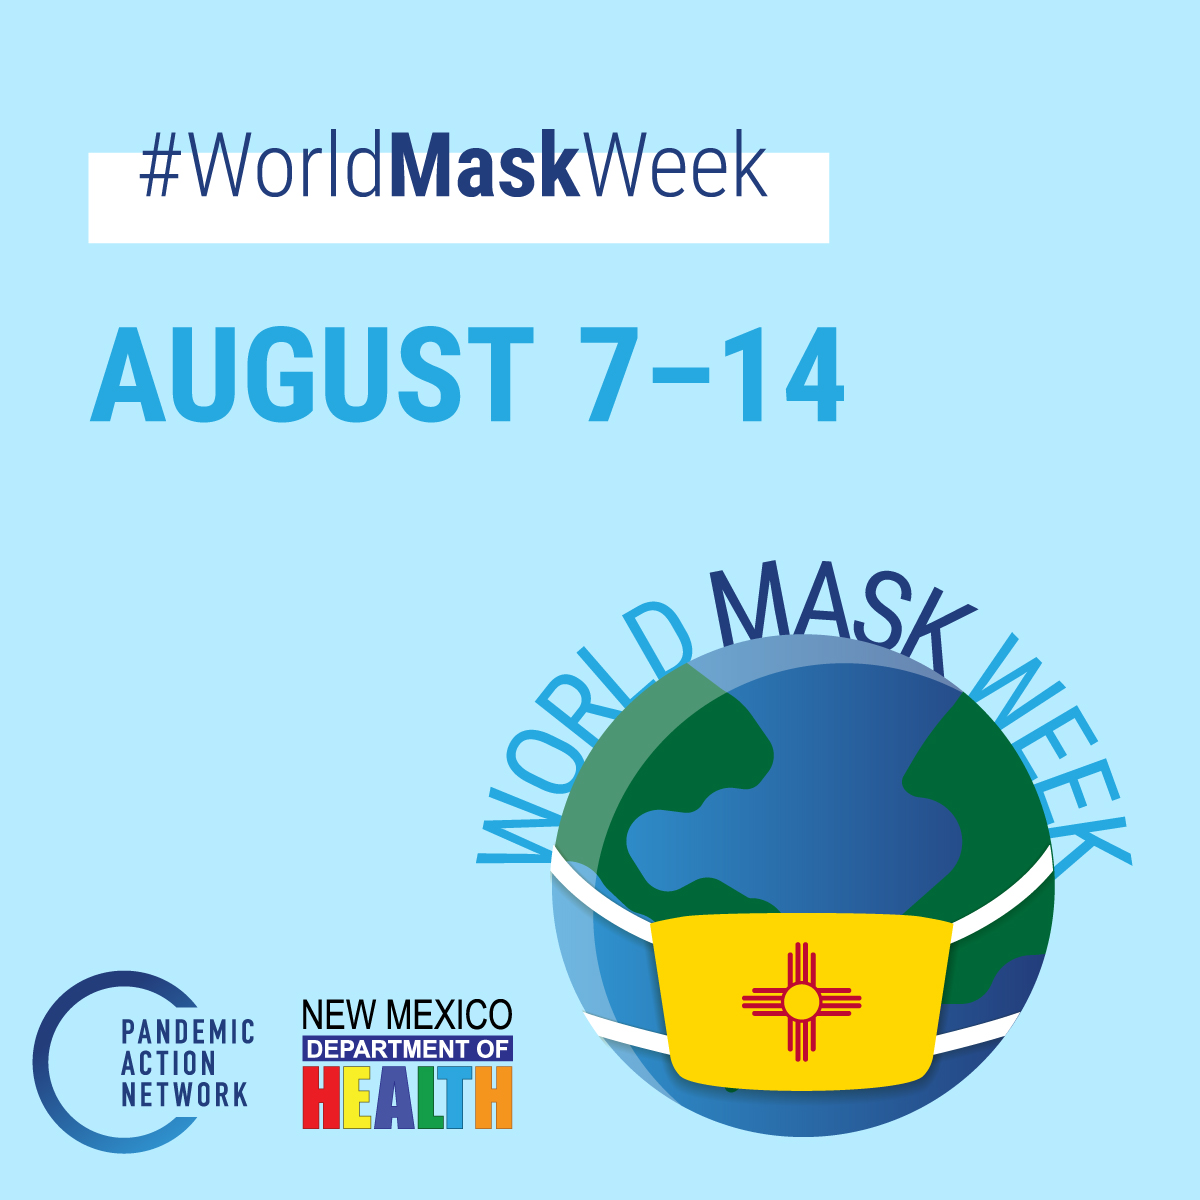 #WorldMaskWeek is a global movement to inspire more people to wear face coverings to help stop the spread of #COVID19. Take Action!